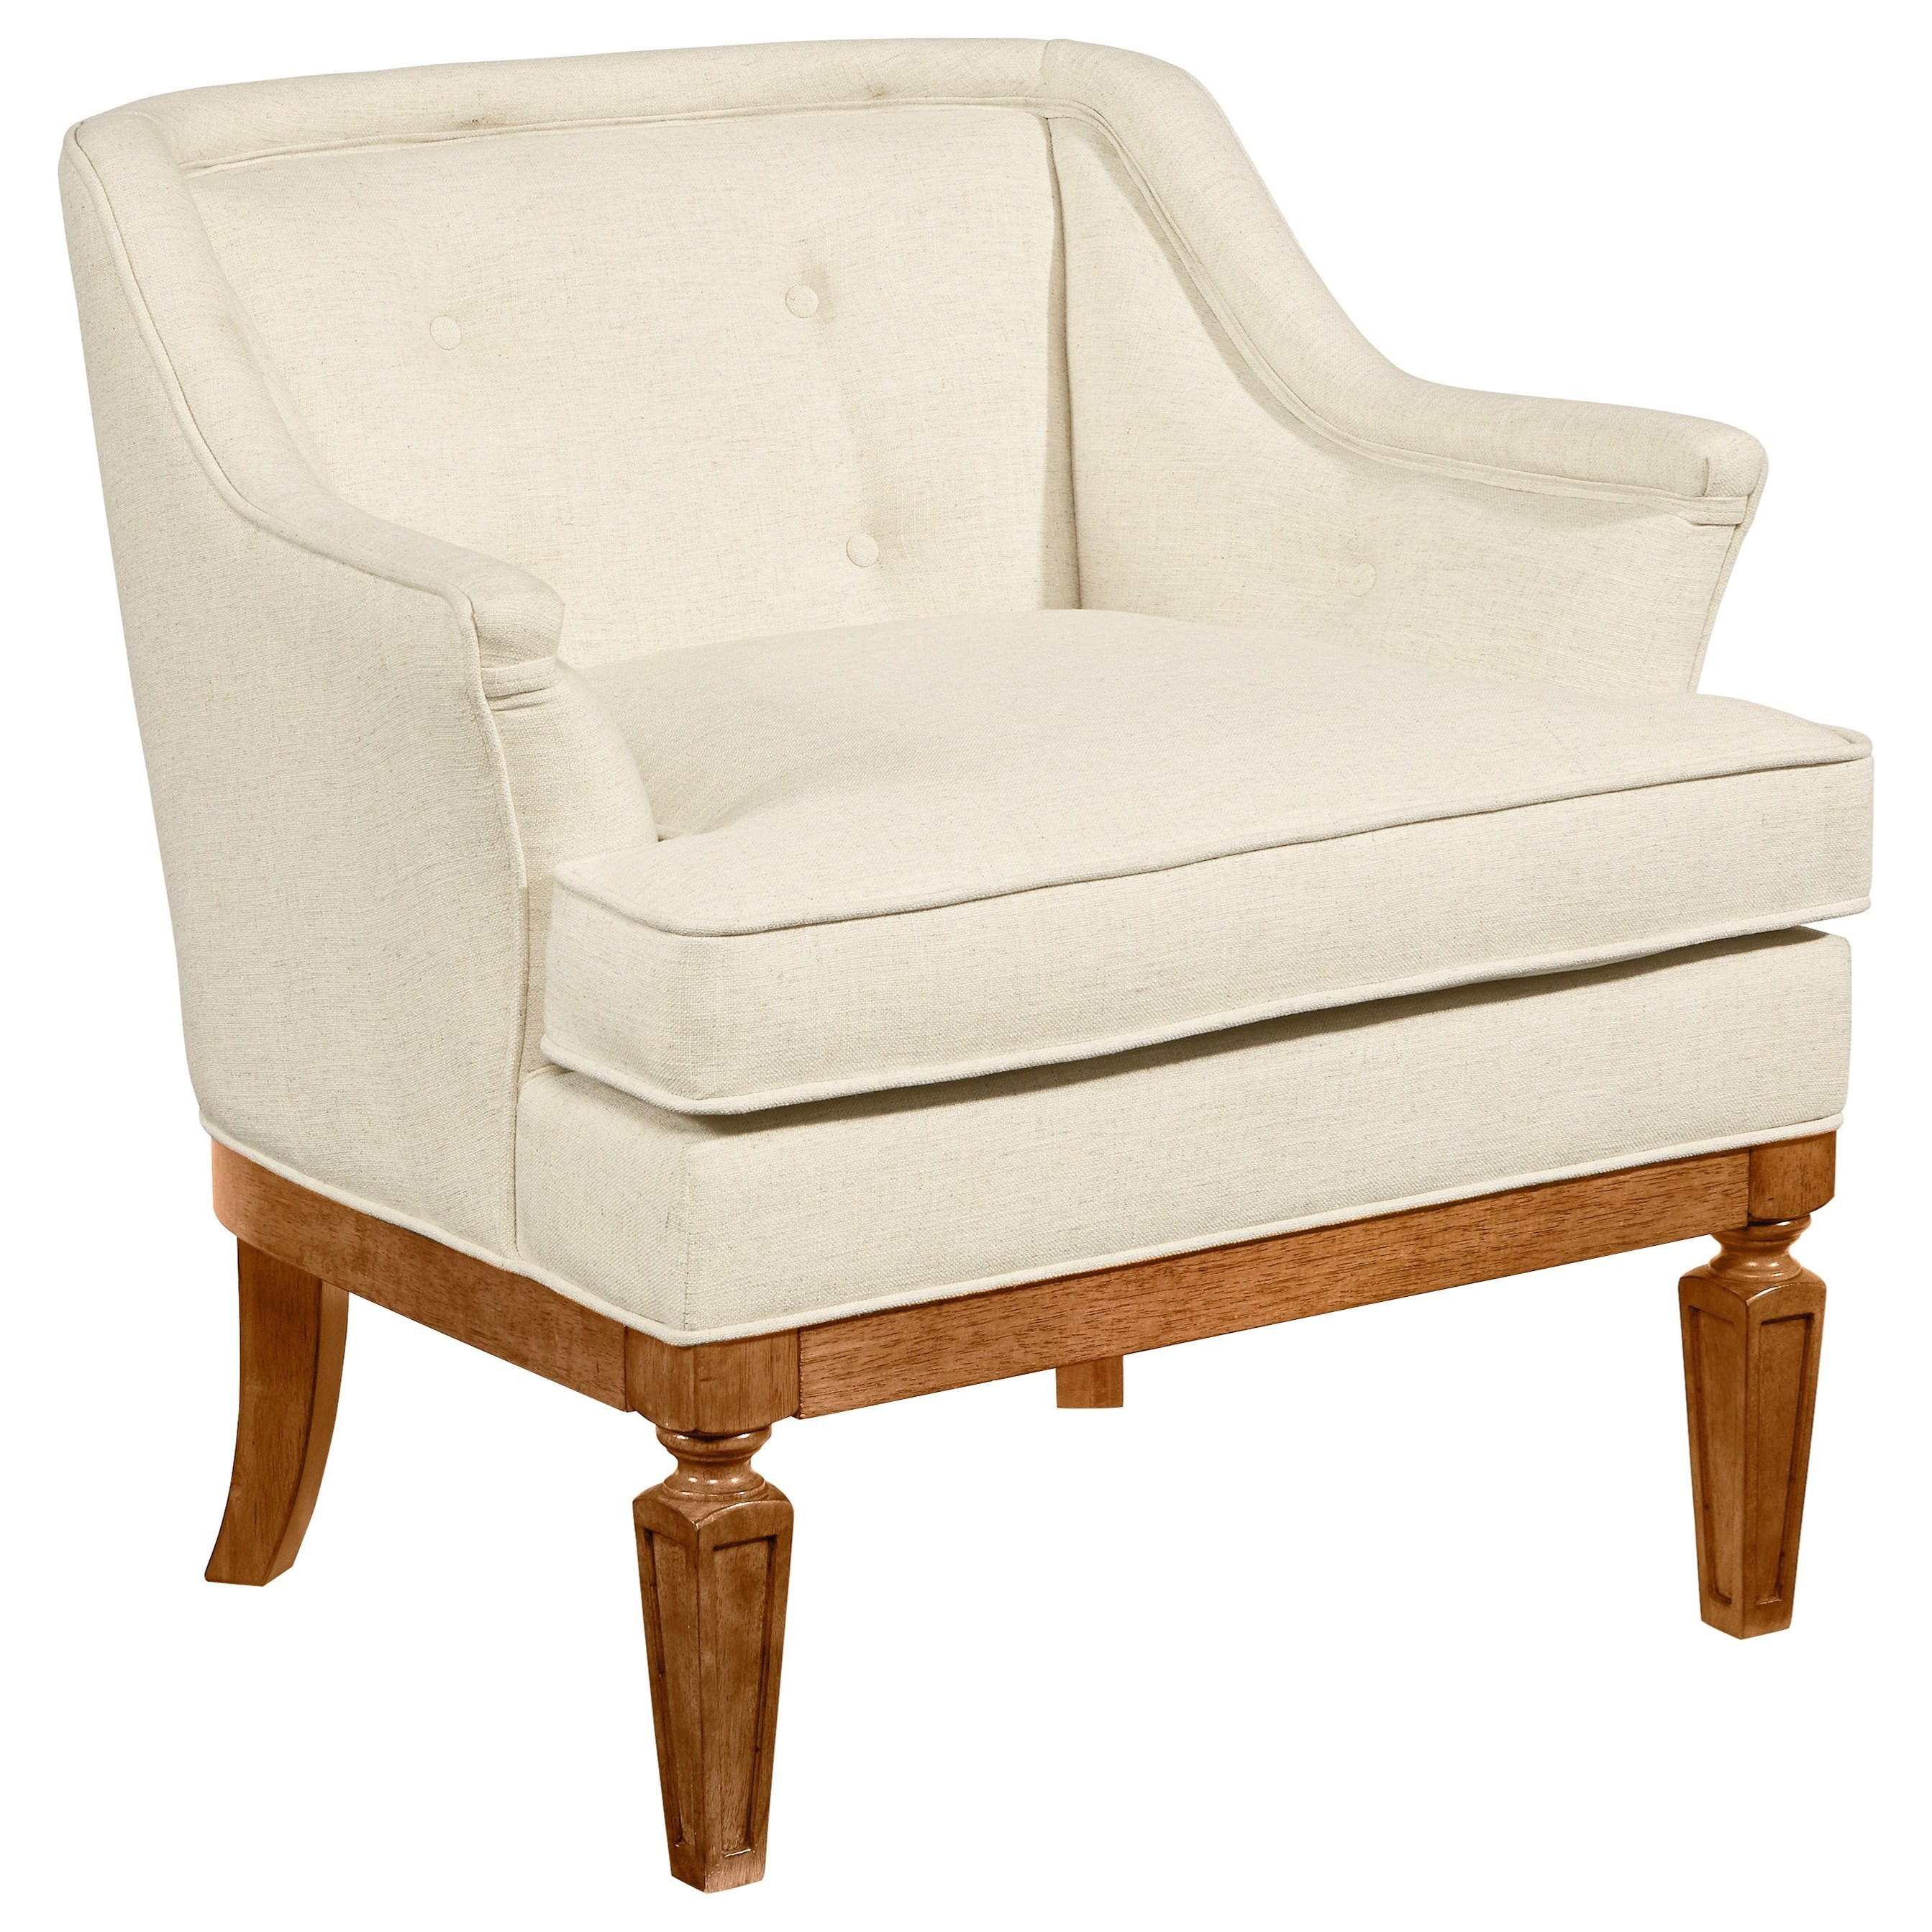 Gentil Magnolia Home By Joanna Gaines Accent ChairsUpholstered Chair ...